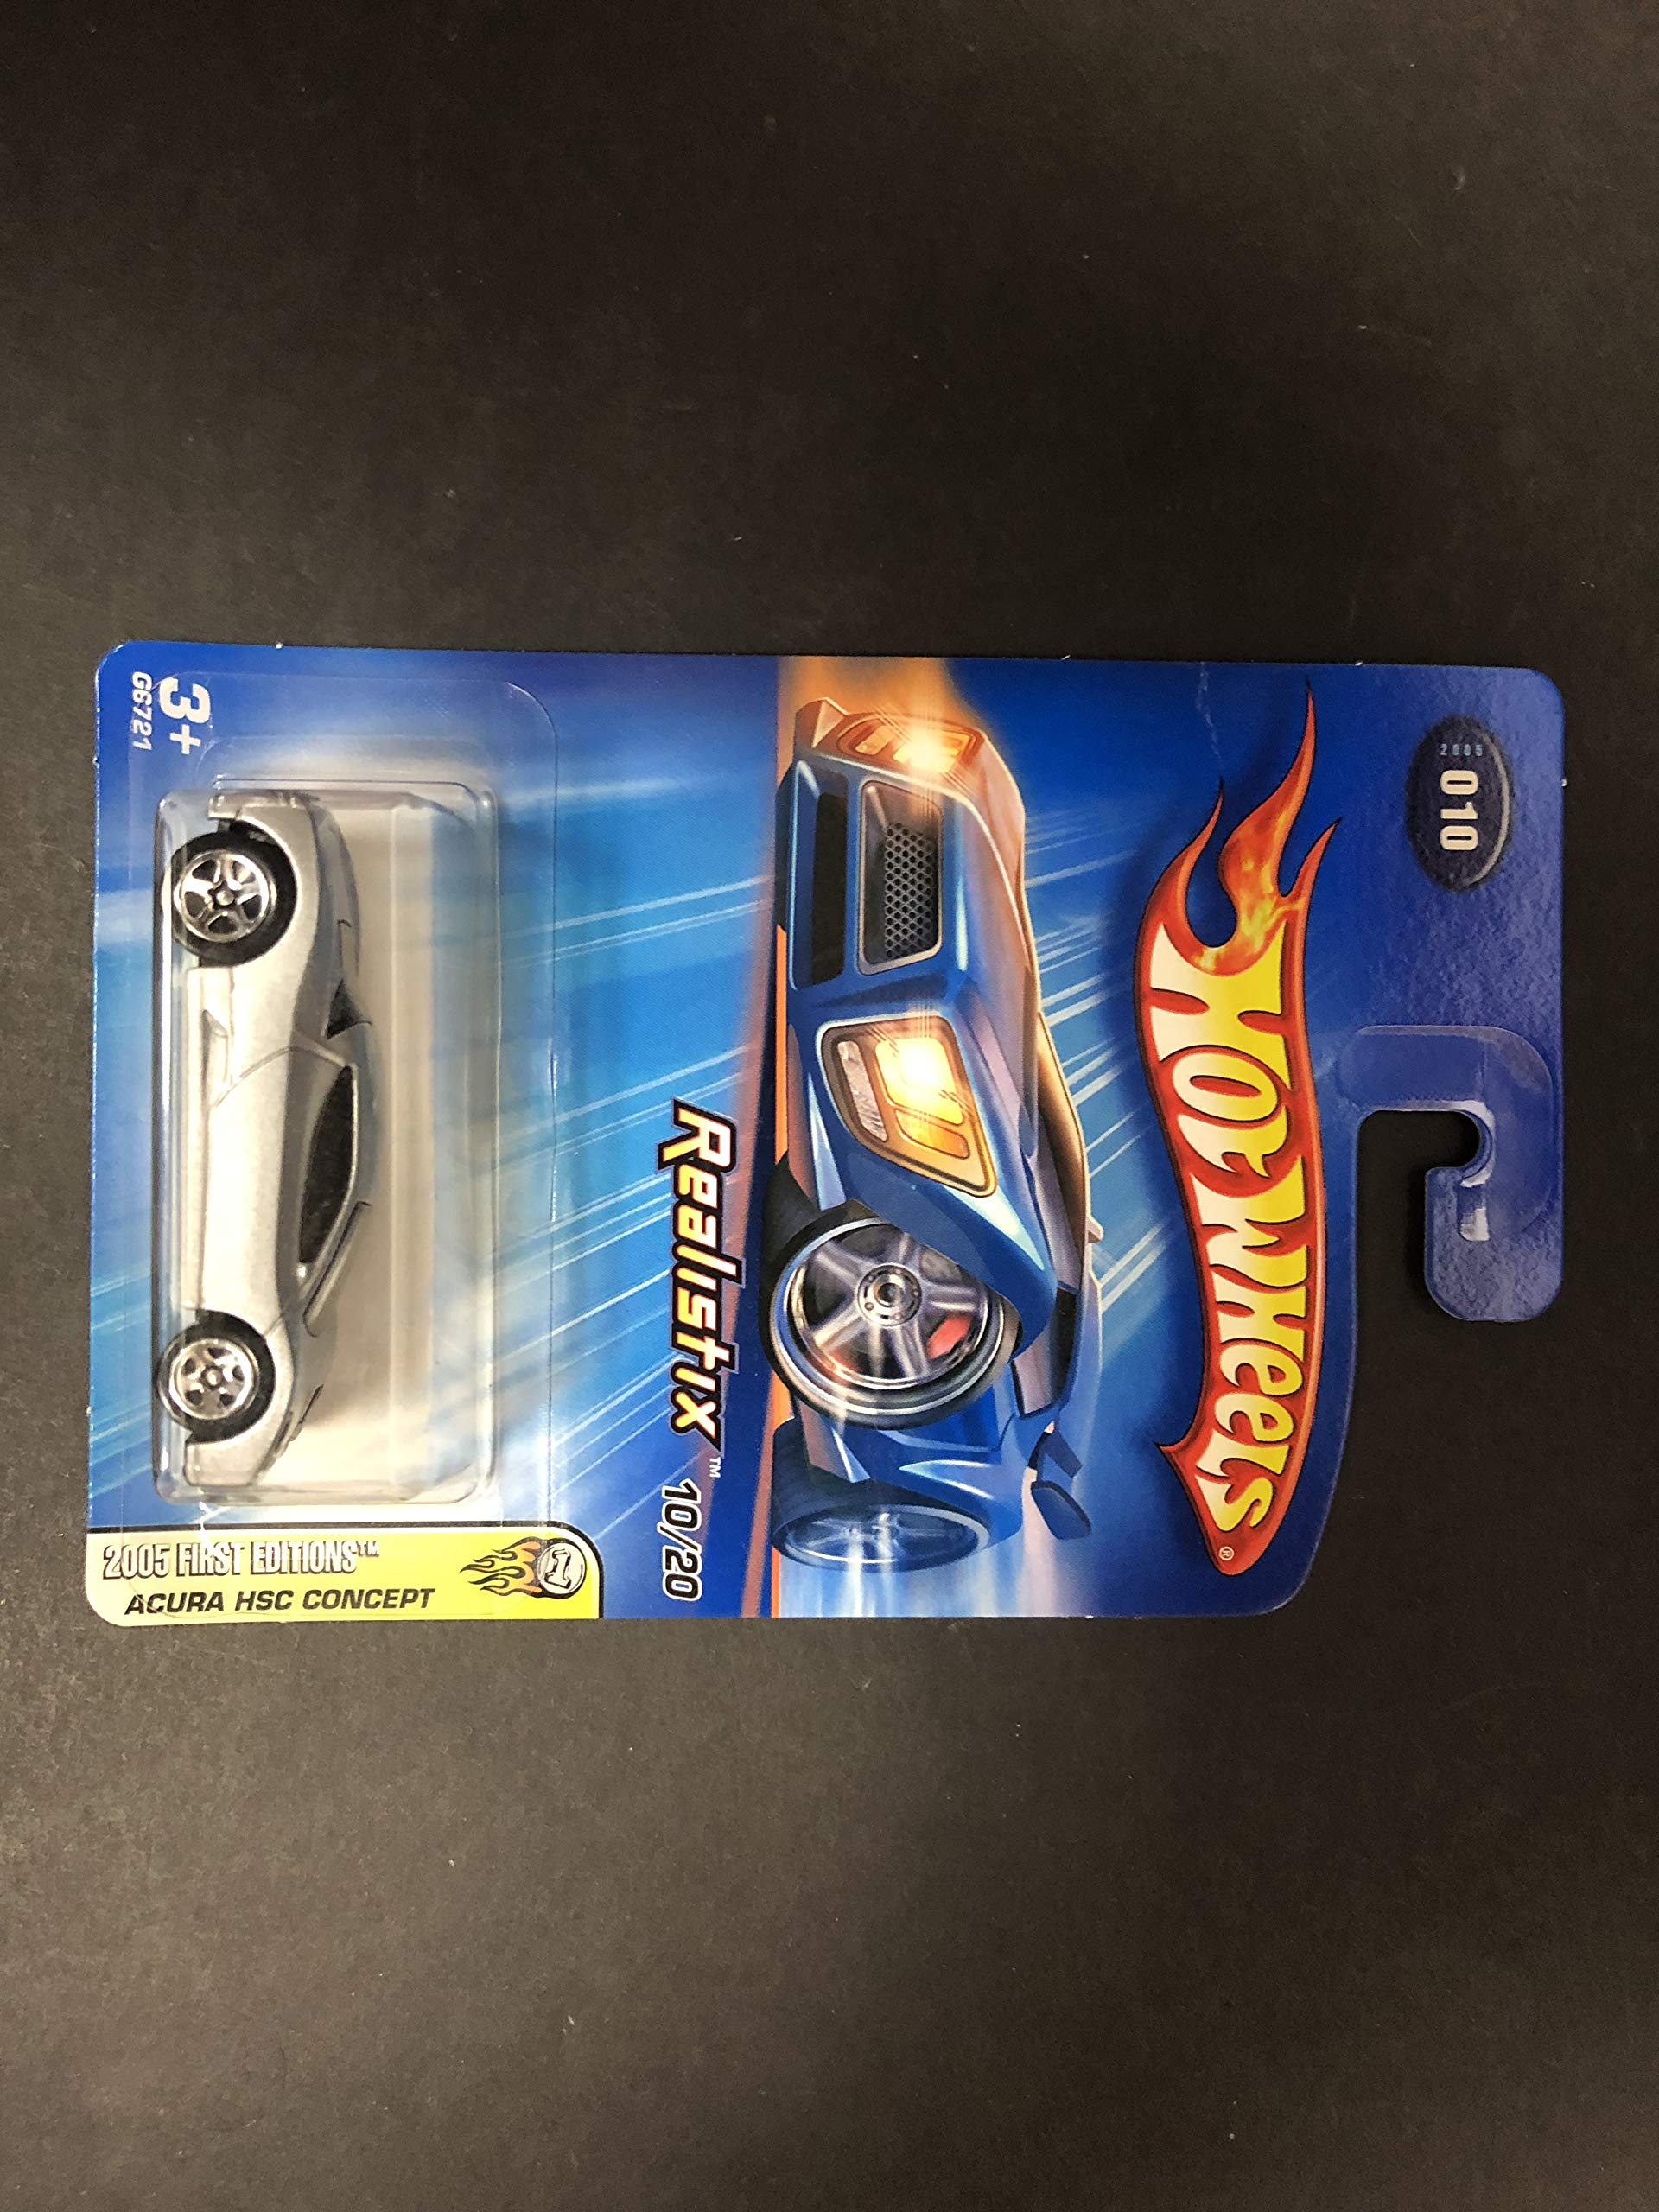 Acura HSC Concept 2005 First Editions Hot Wheels diecast car No. 010